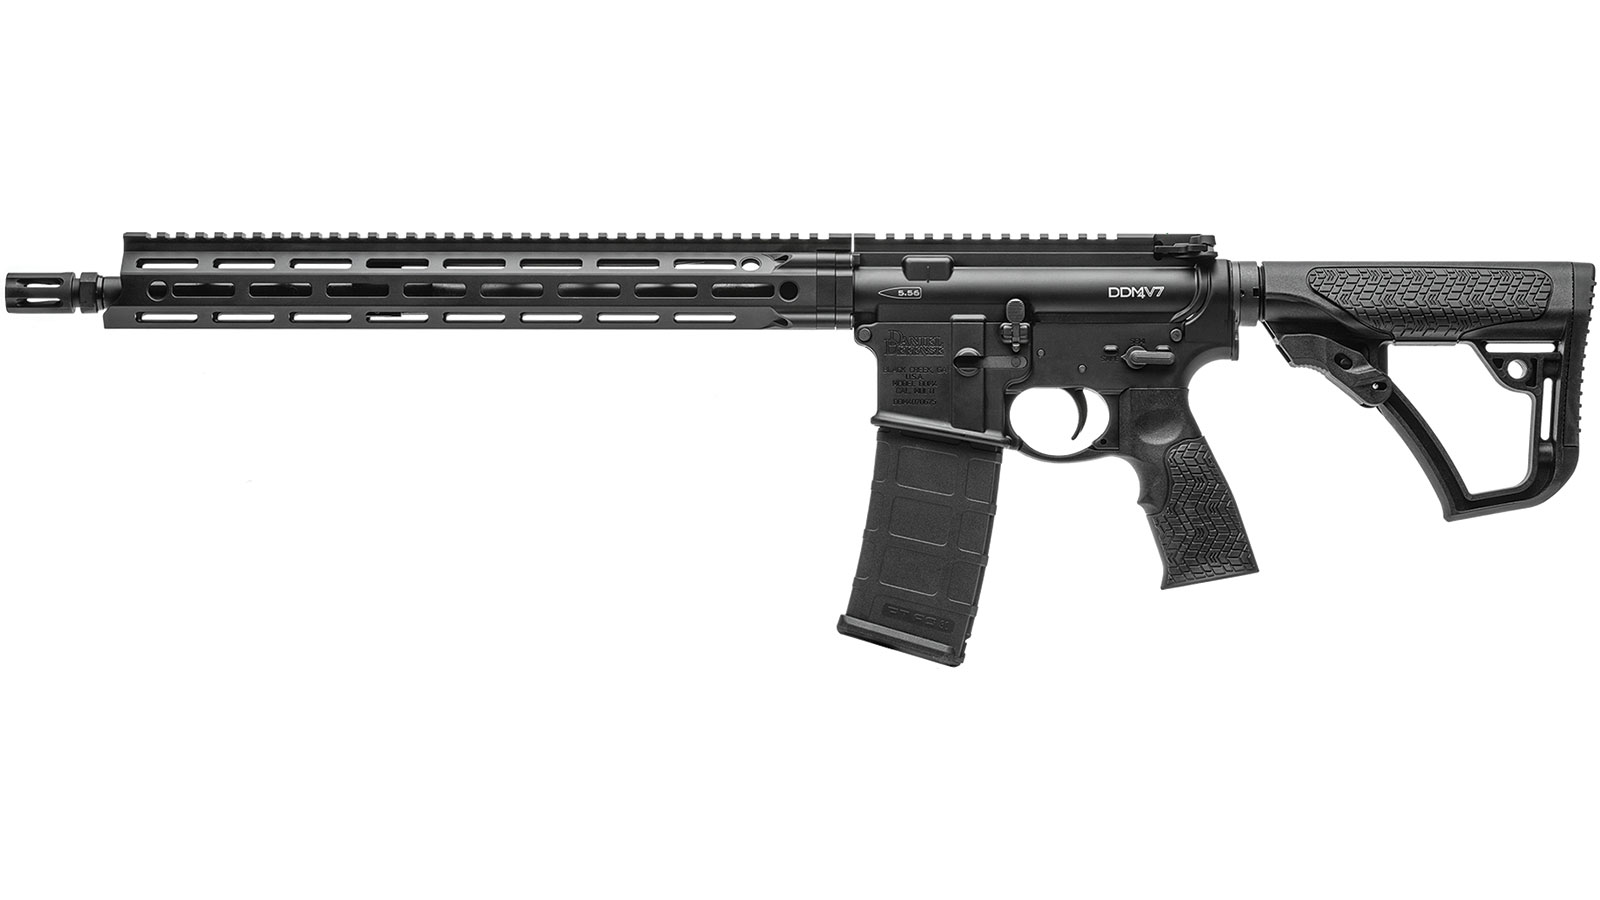 Daniel Defense 02081047 DDM4 V7 Semi-Automatic 5.56 NATO 16 30+1 6-Position Black Stk Black Hardcoat Anodized|Black Phosphate in.